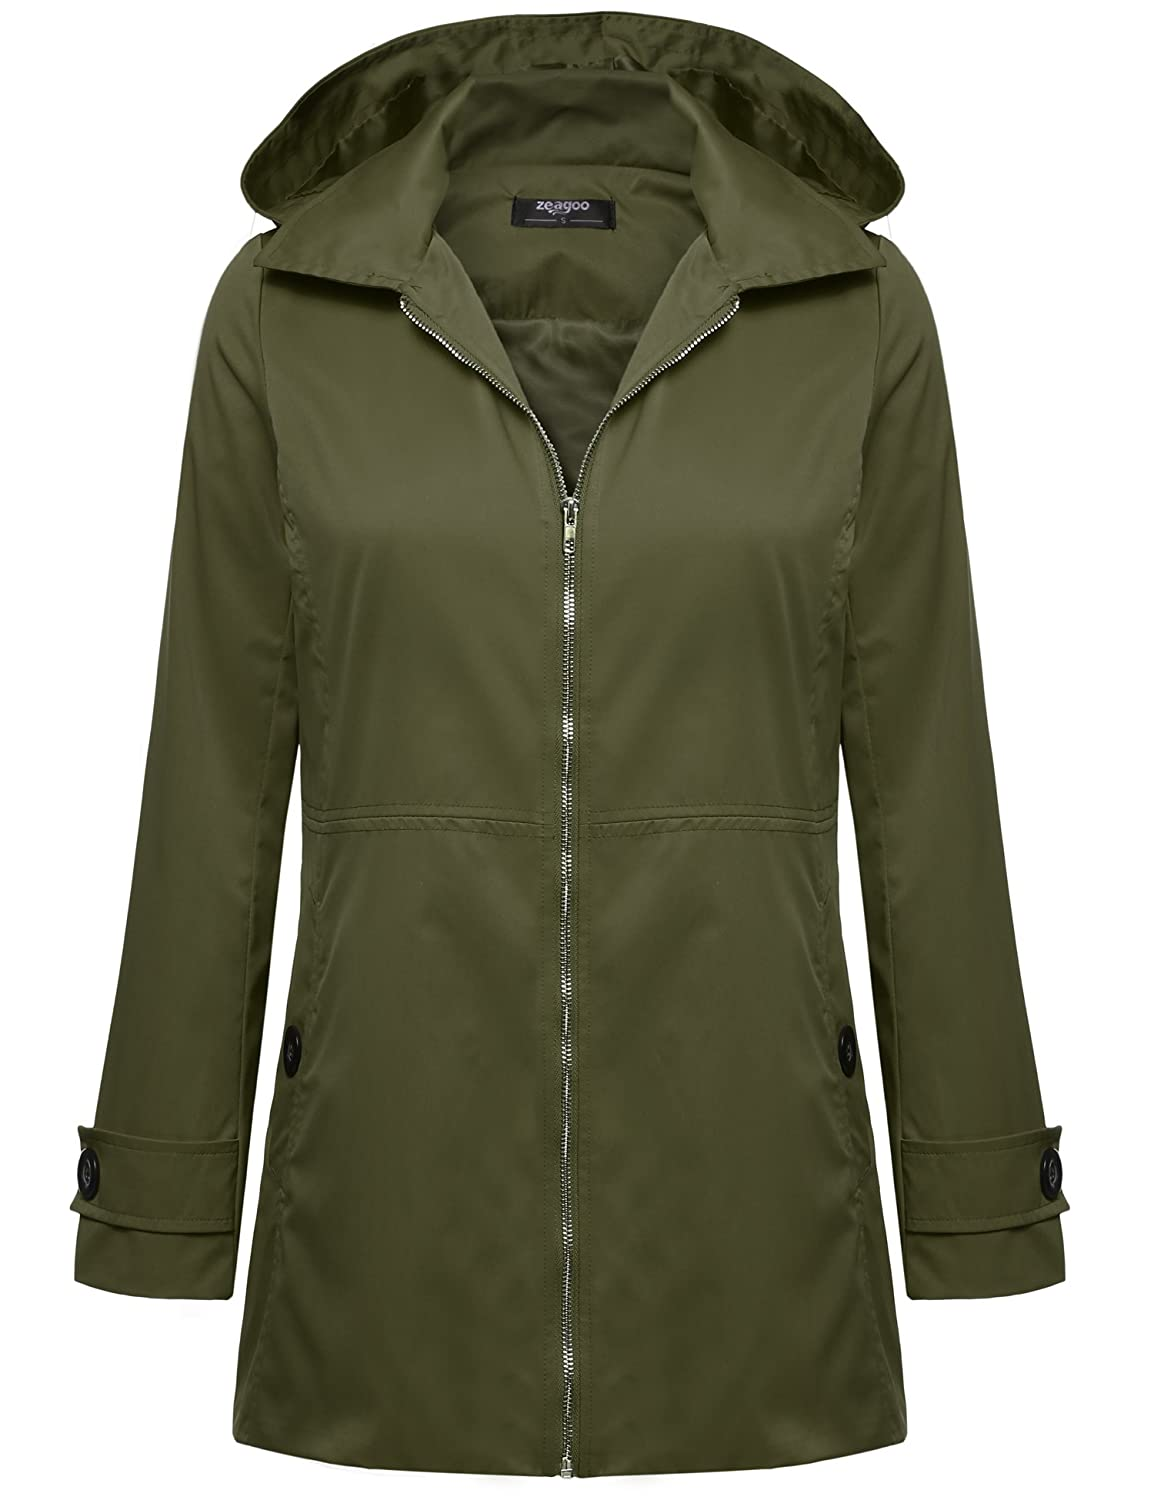 Womens Lined Rain Jacket  Jacket To # Sunshower Coat_021838